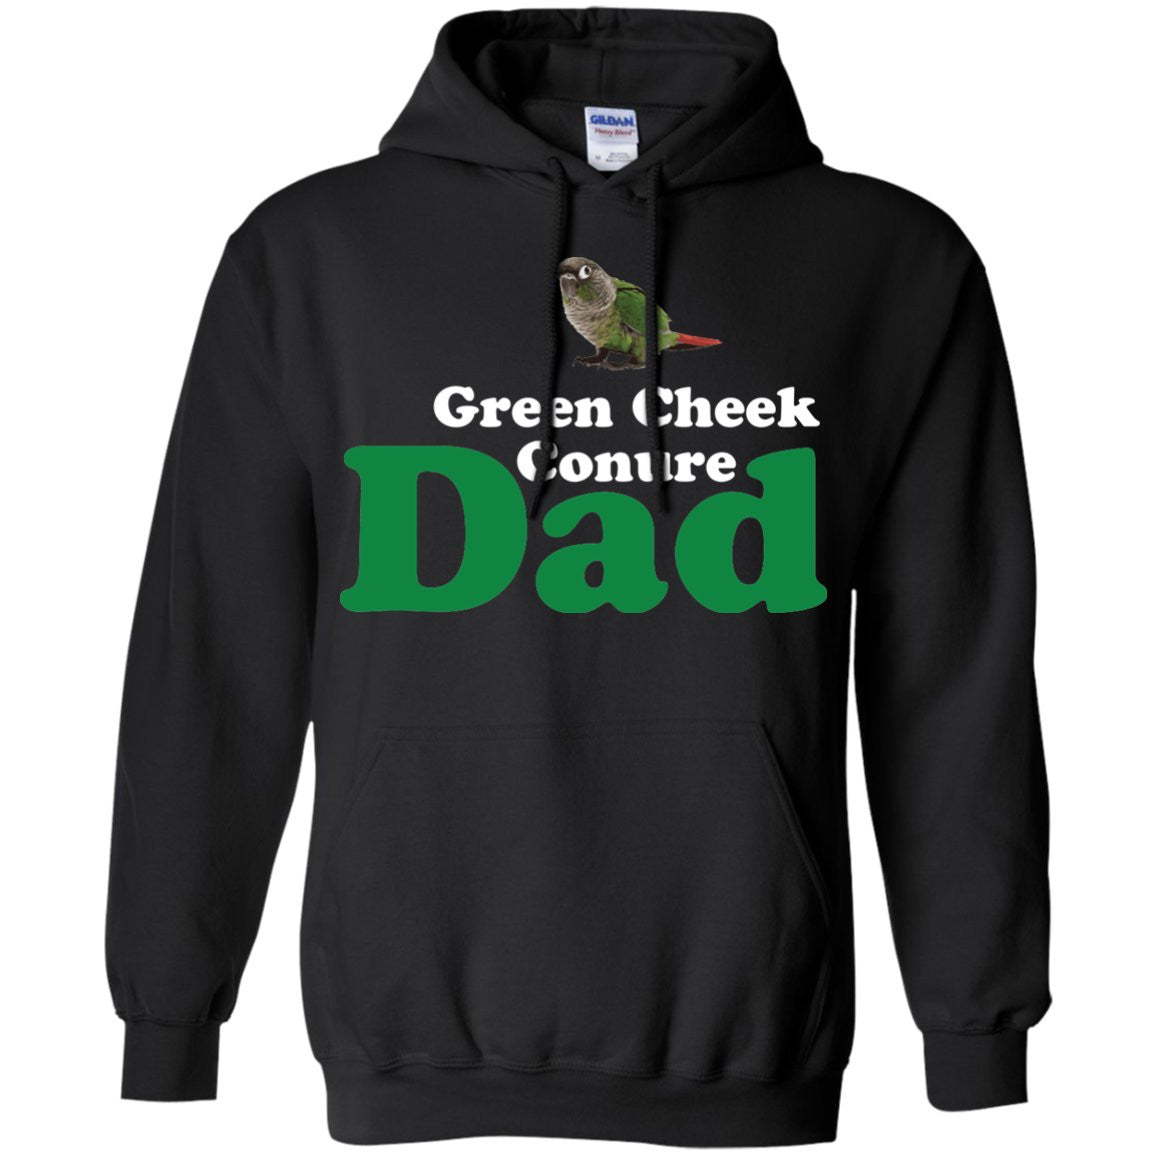 Green Cheek Conure Dad - Funny Shirt  Pullover Hoodie 8 oz